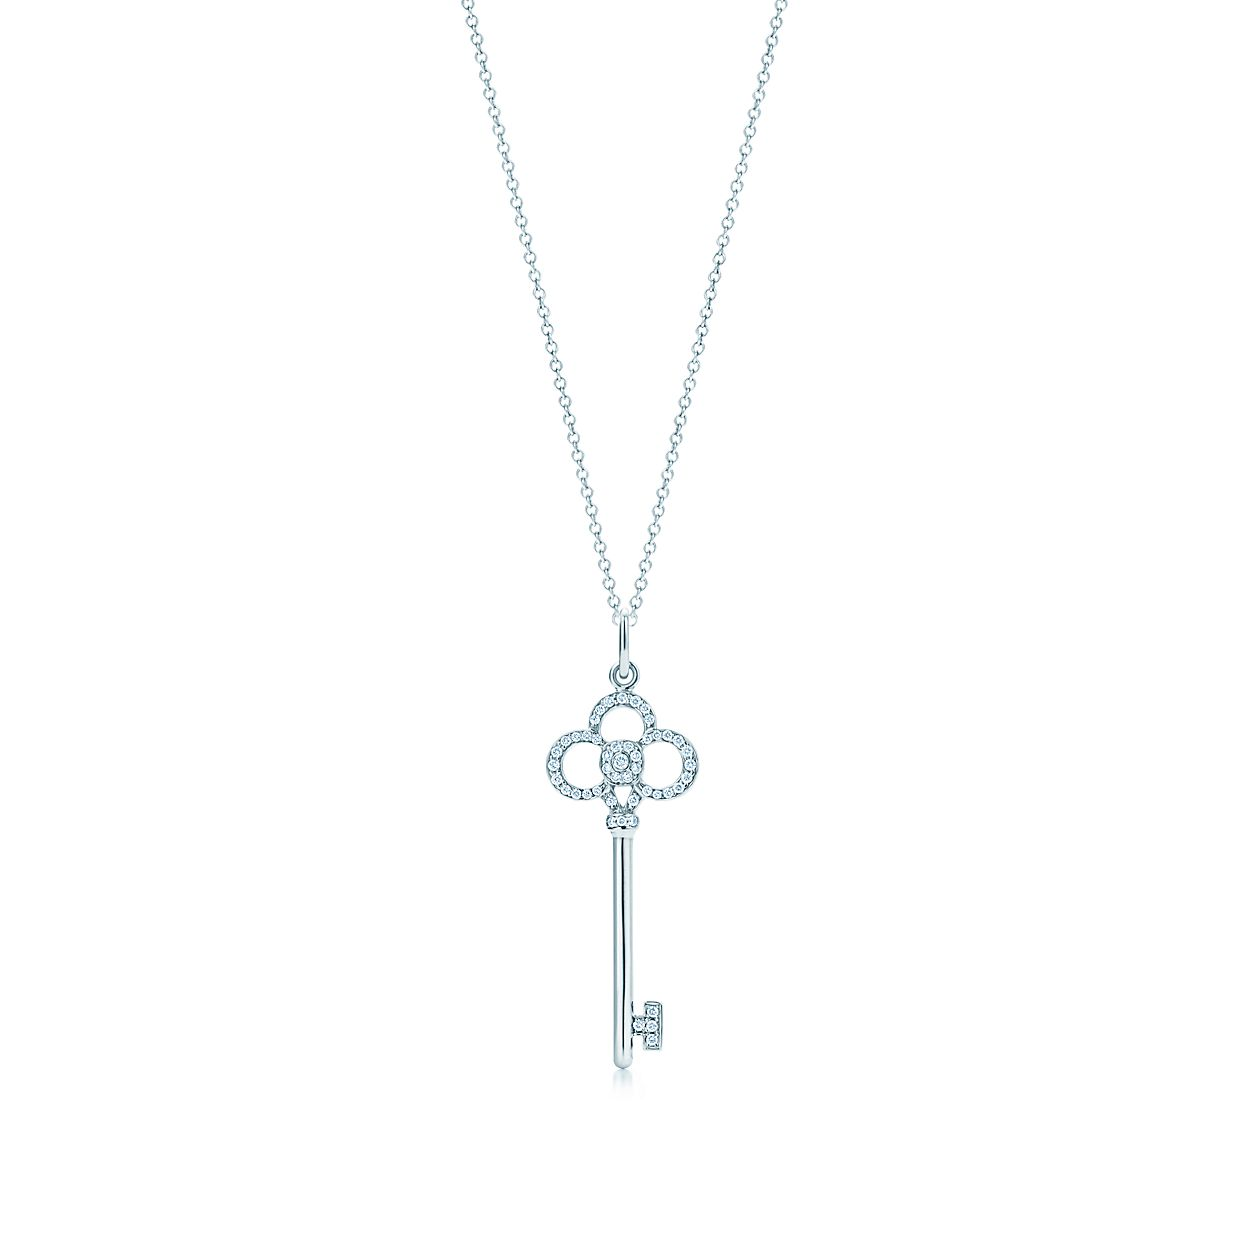 Tiffany keys crown key diamond pendant in 18k white gold tiffany keyscrown key pendant tiffany keyscrown key pendant aloadofball Gallery